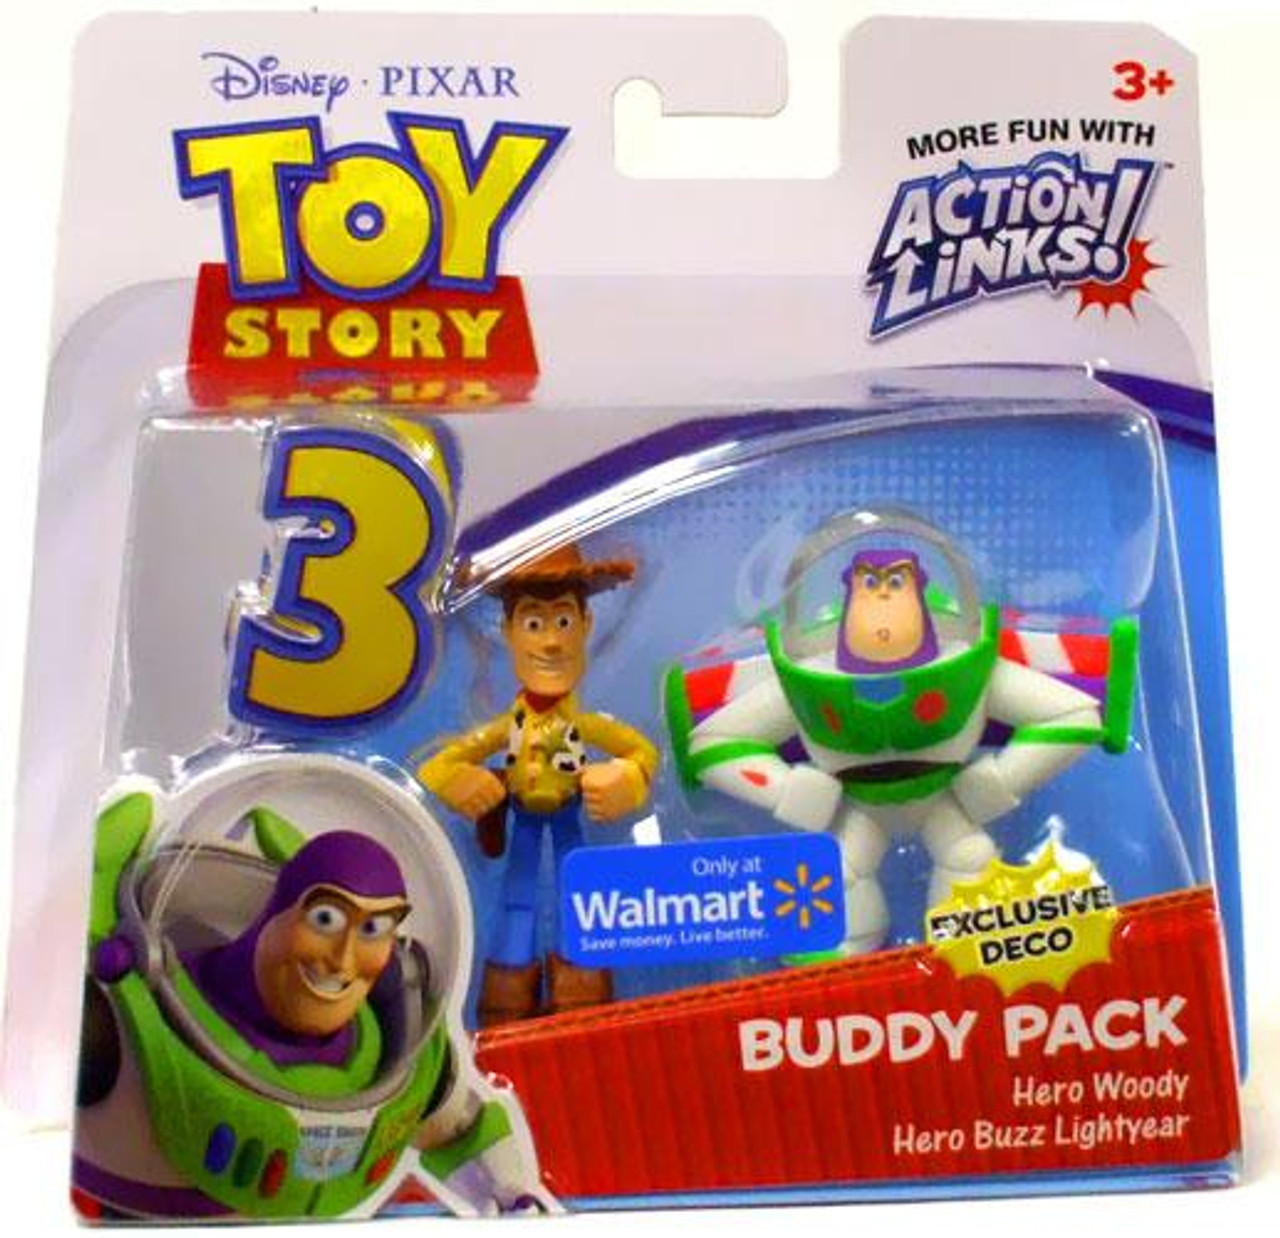 Toy Story 3 Action Links Buddy Pack Hero Woody & Hero Buzz Lightyear Exclusive Mini Figure 2-Pack [Exclusive Deco]